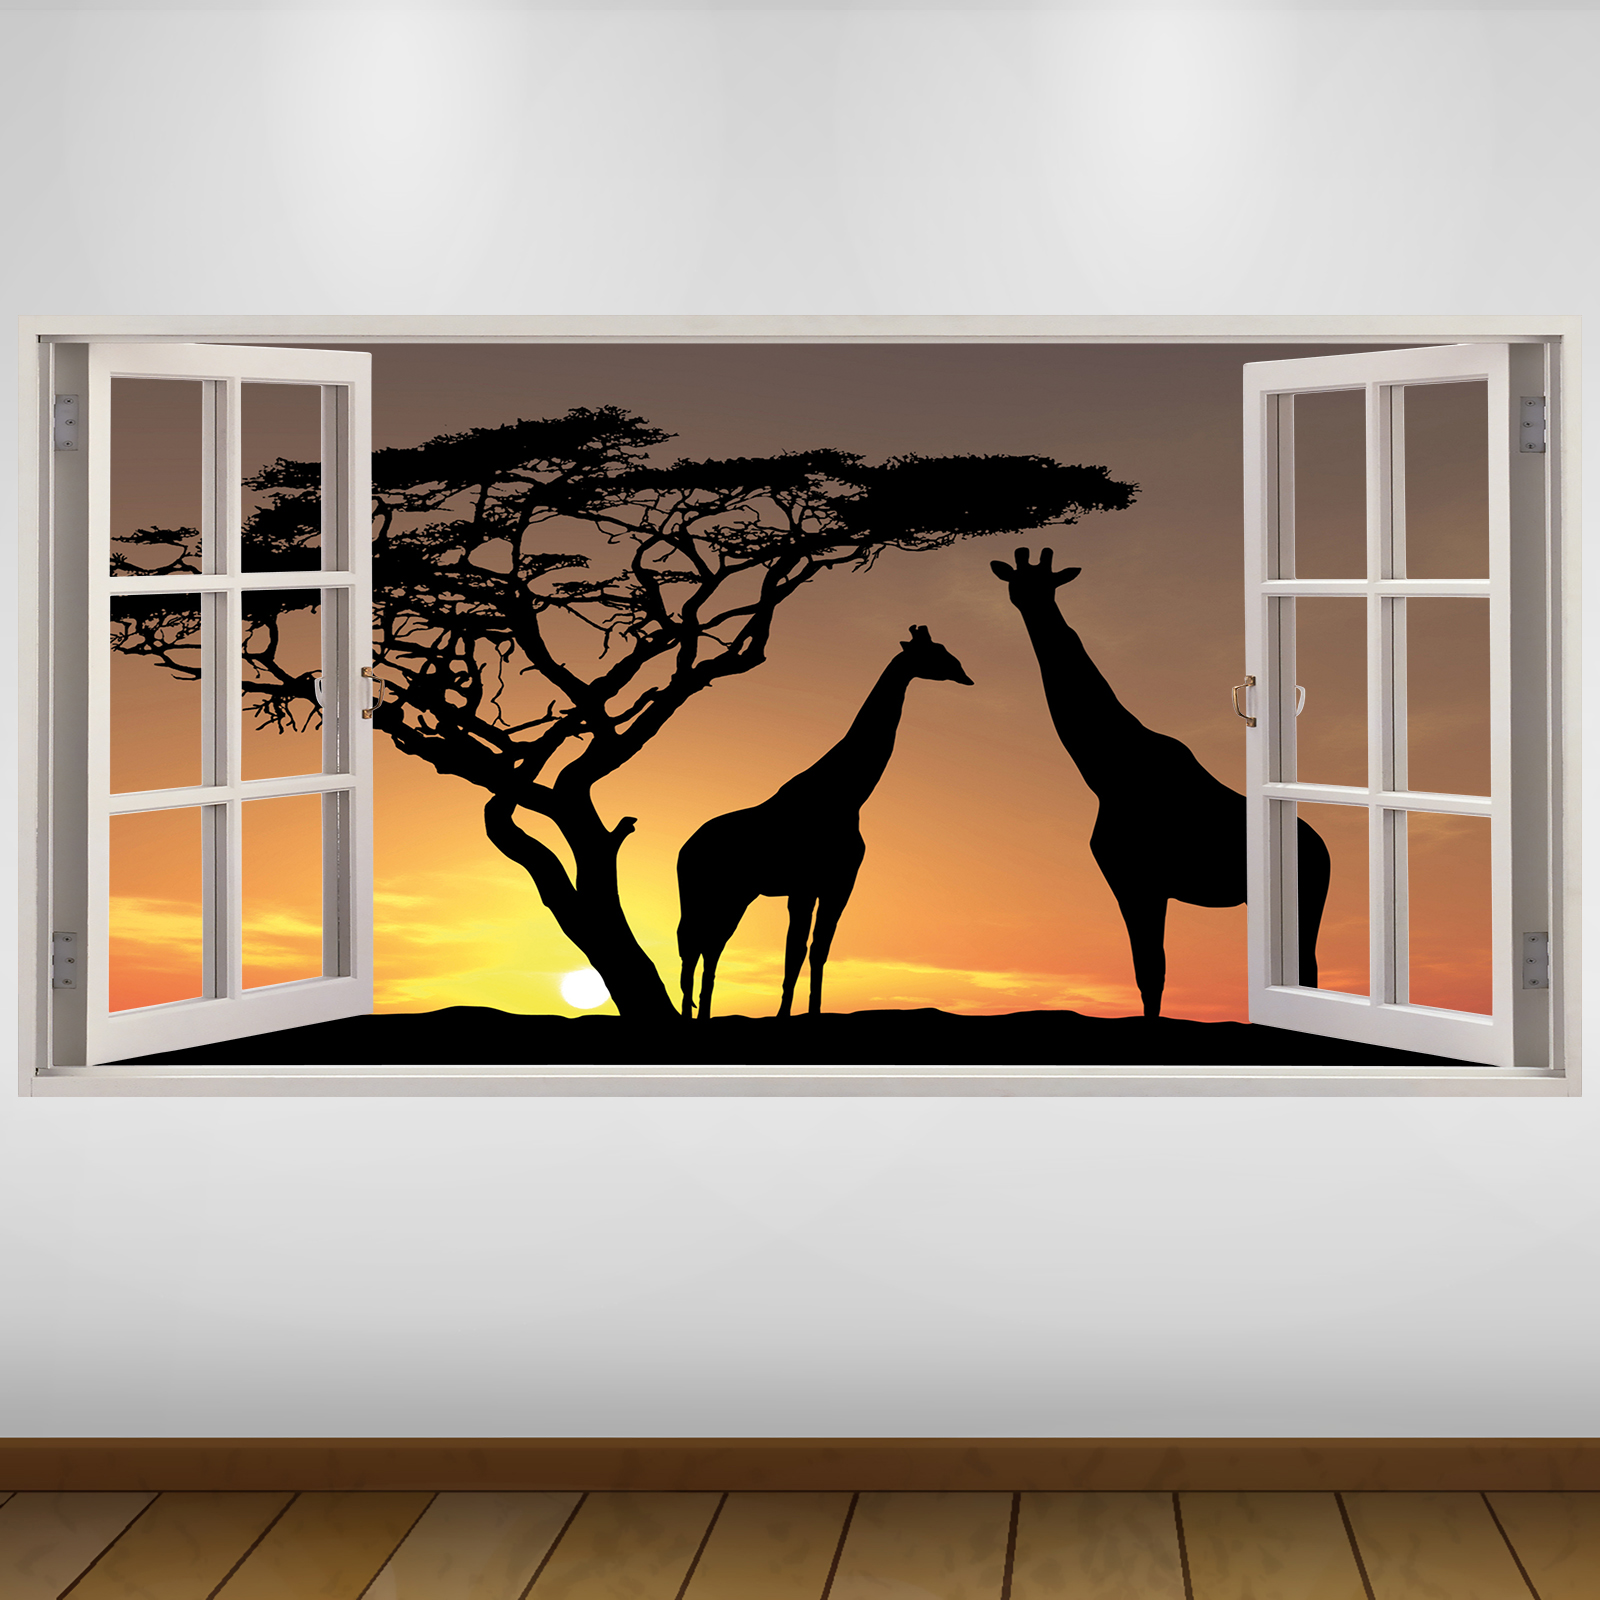 extra large africa wildlife nature 3d vinyl wall art decal sticker